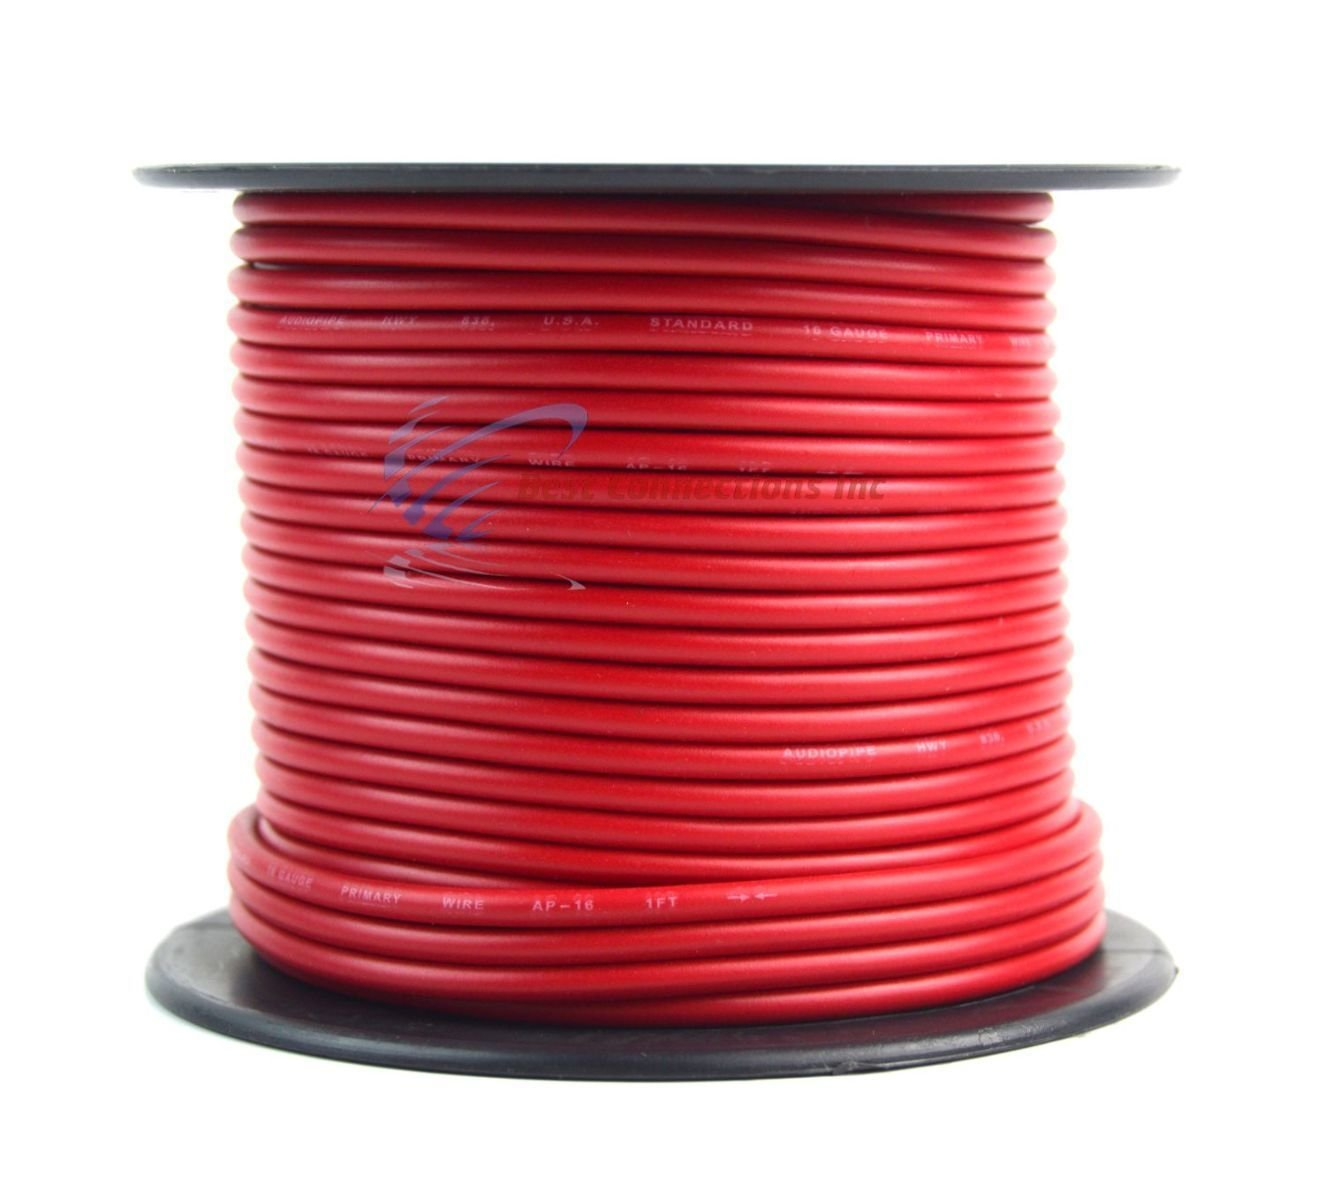 16 Gauge Wire Red Black Power Ground 100 Ft Each Color Coded 22 Wires Primary Stranded Copper Clad Everything Else